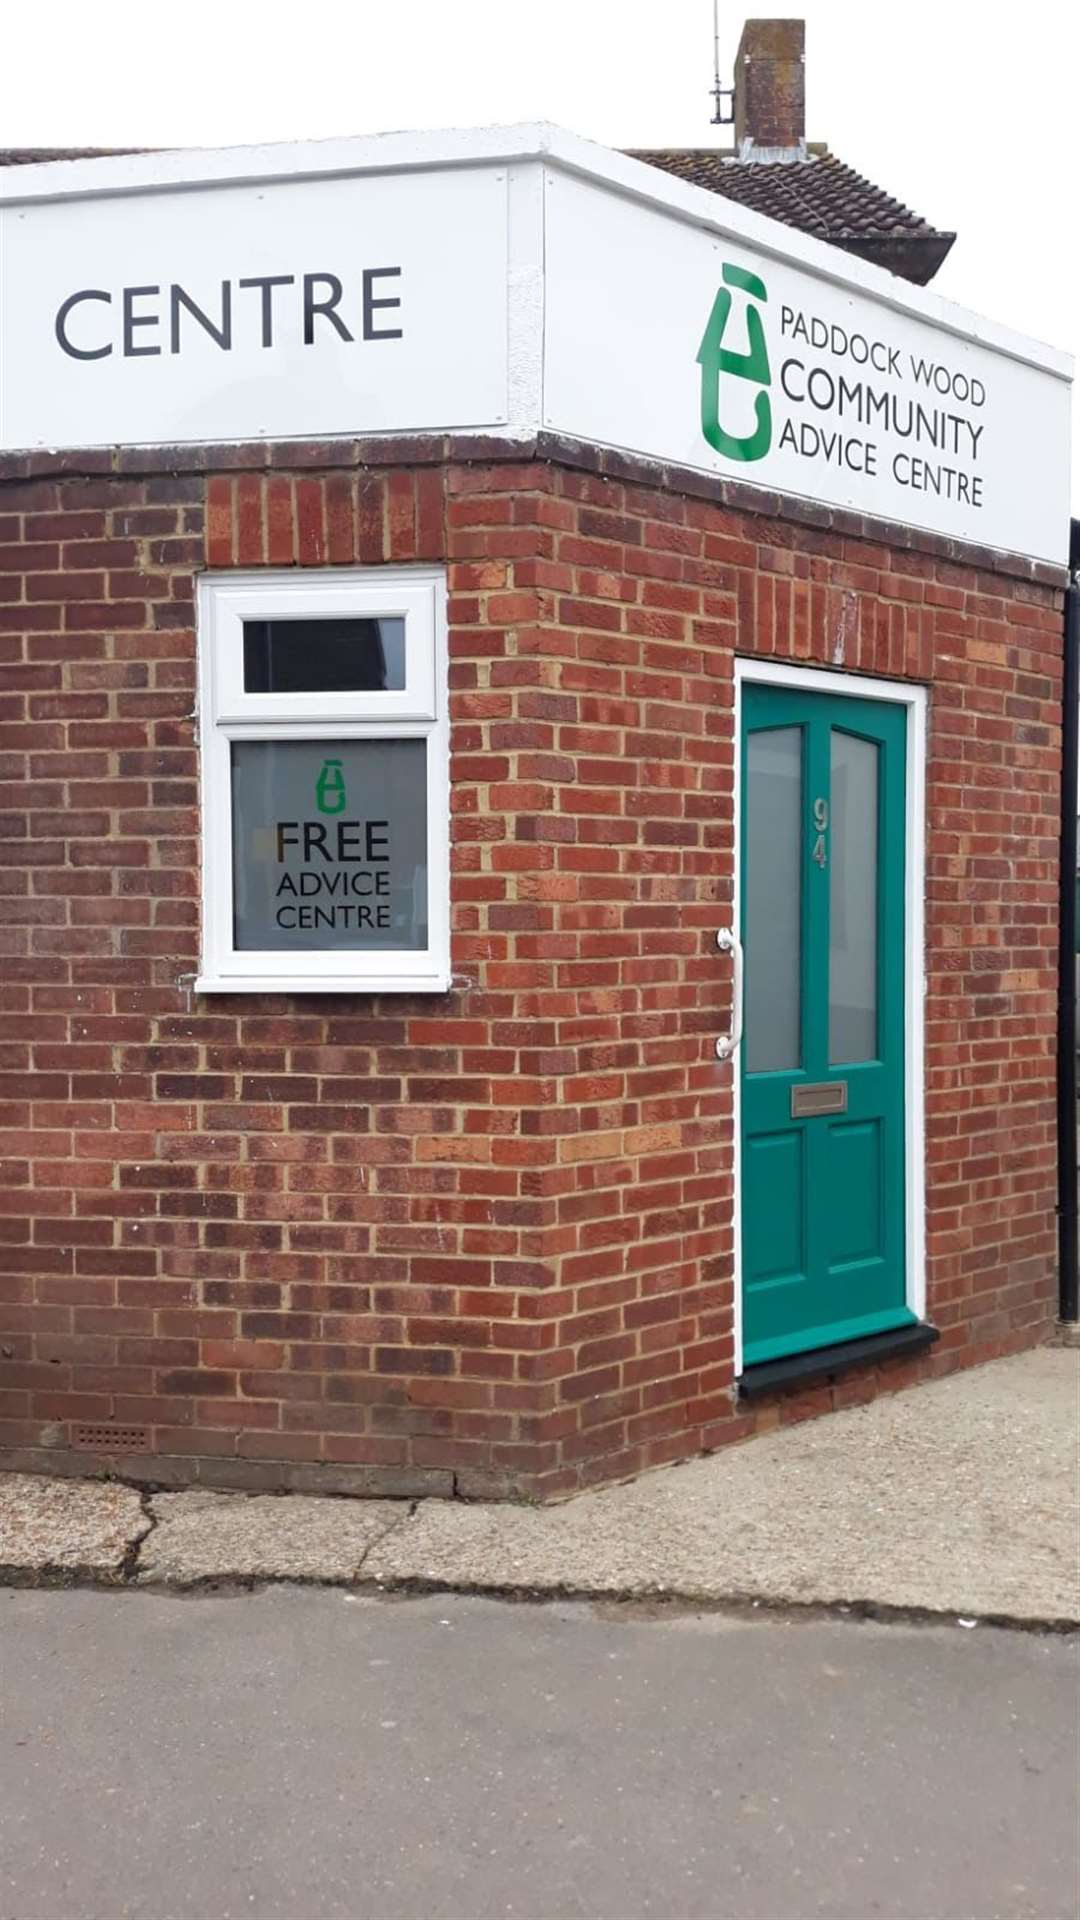 The new Paddock Wood Community Advice Centre in Commercial Road